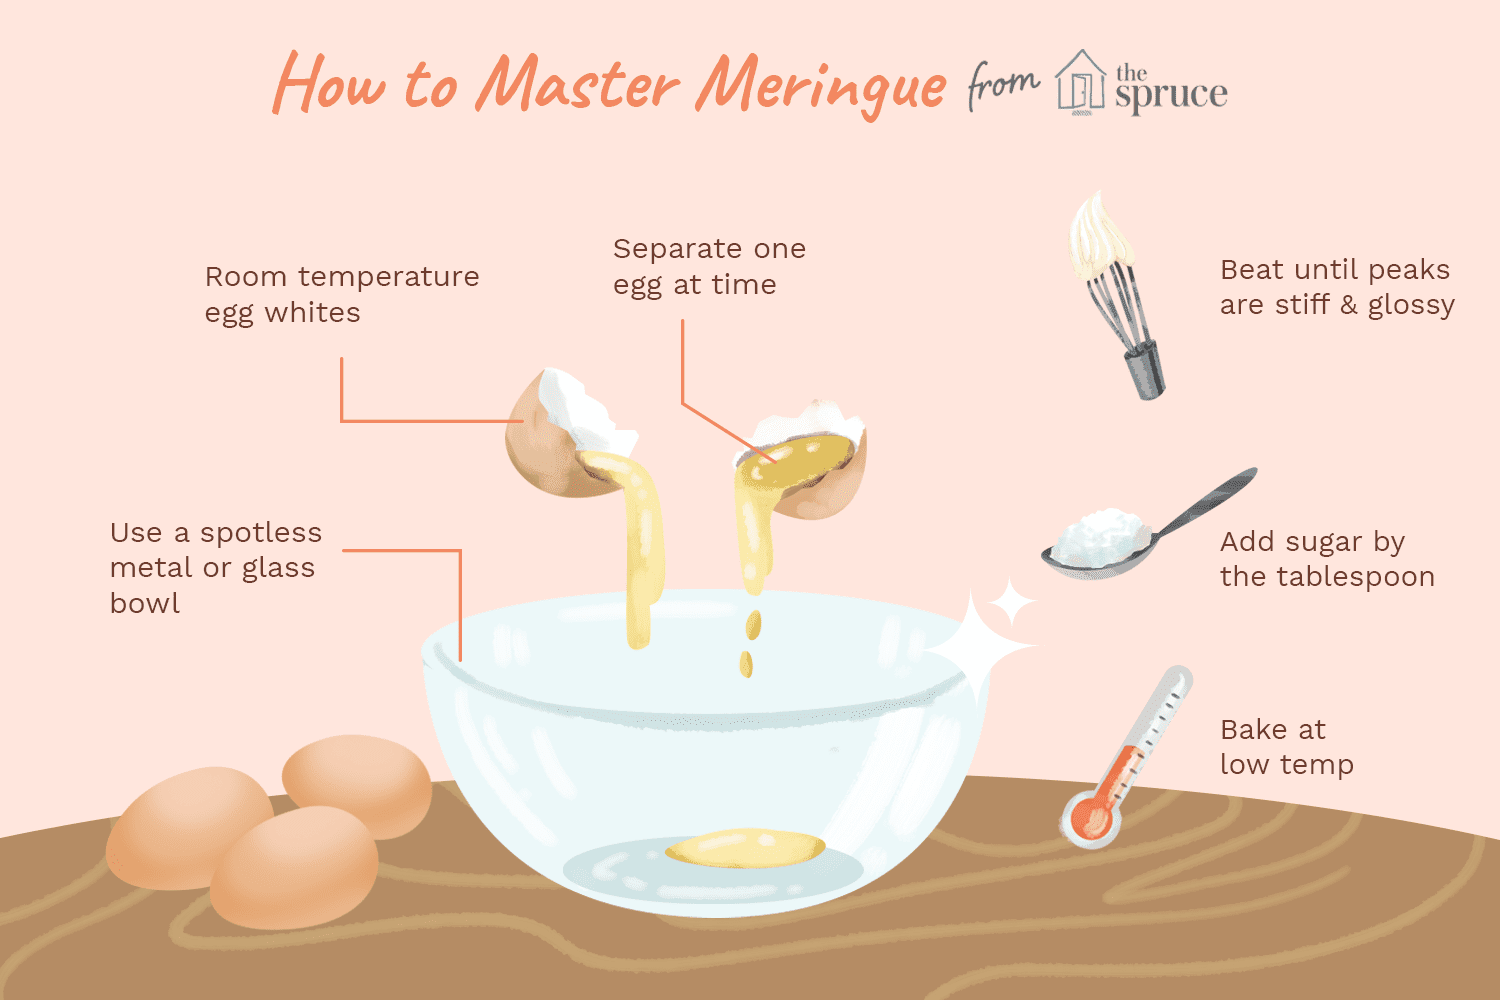 7 Common Mistakes to Avoid When Making Meringue